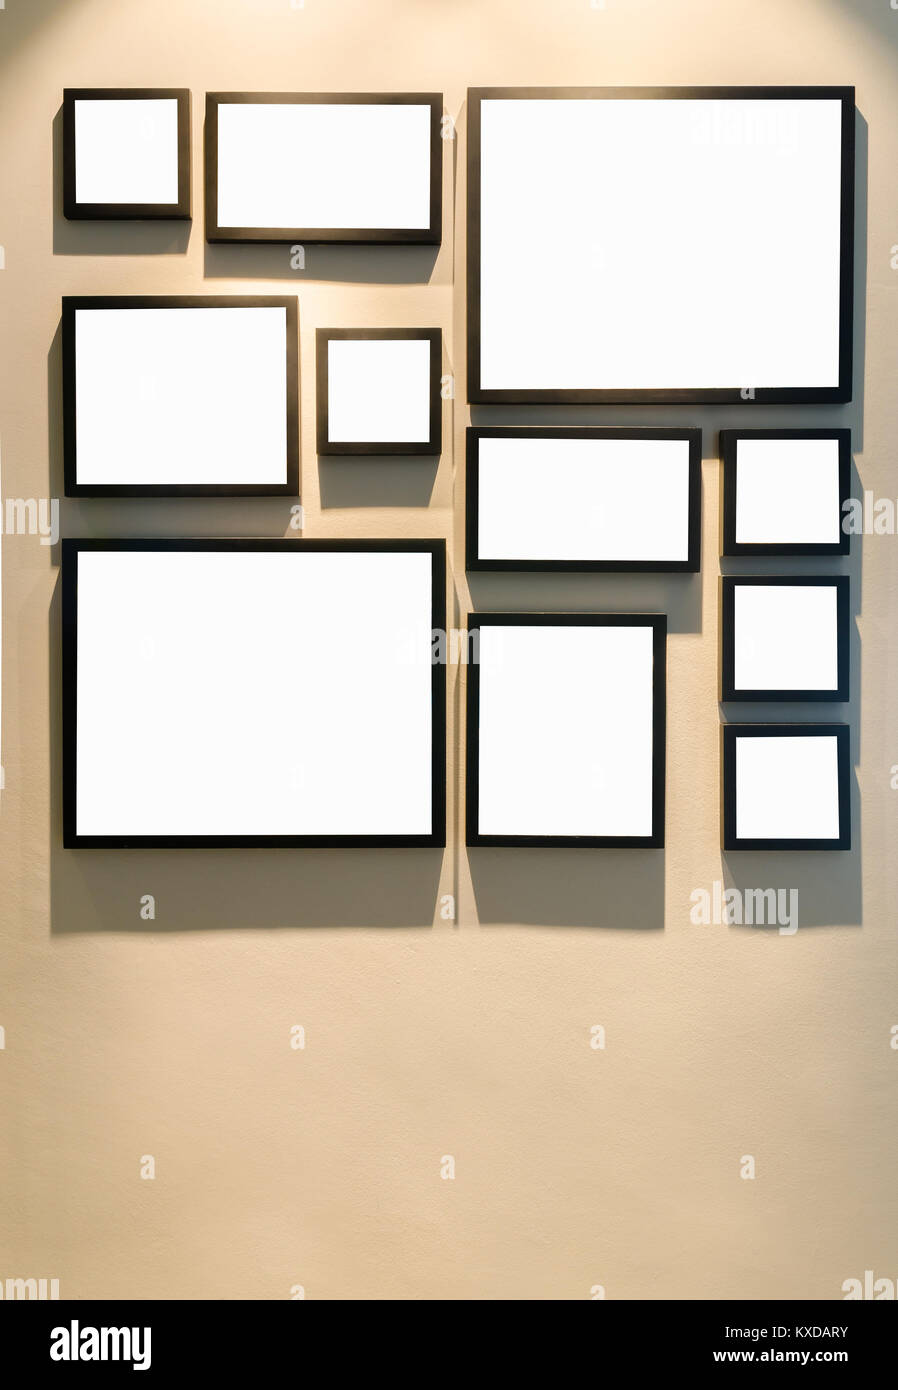 Different size of black photo frame on wall - Stock Image